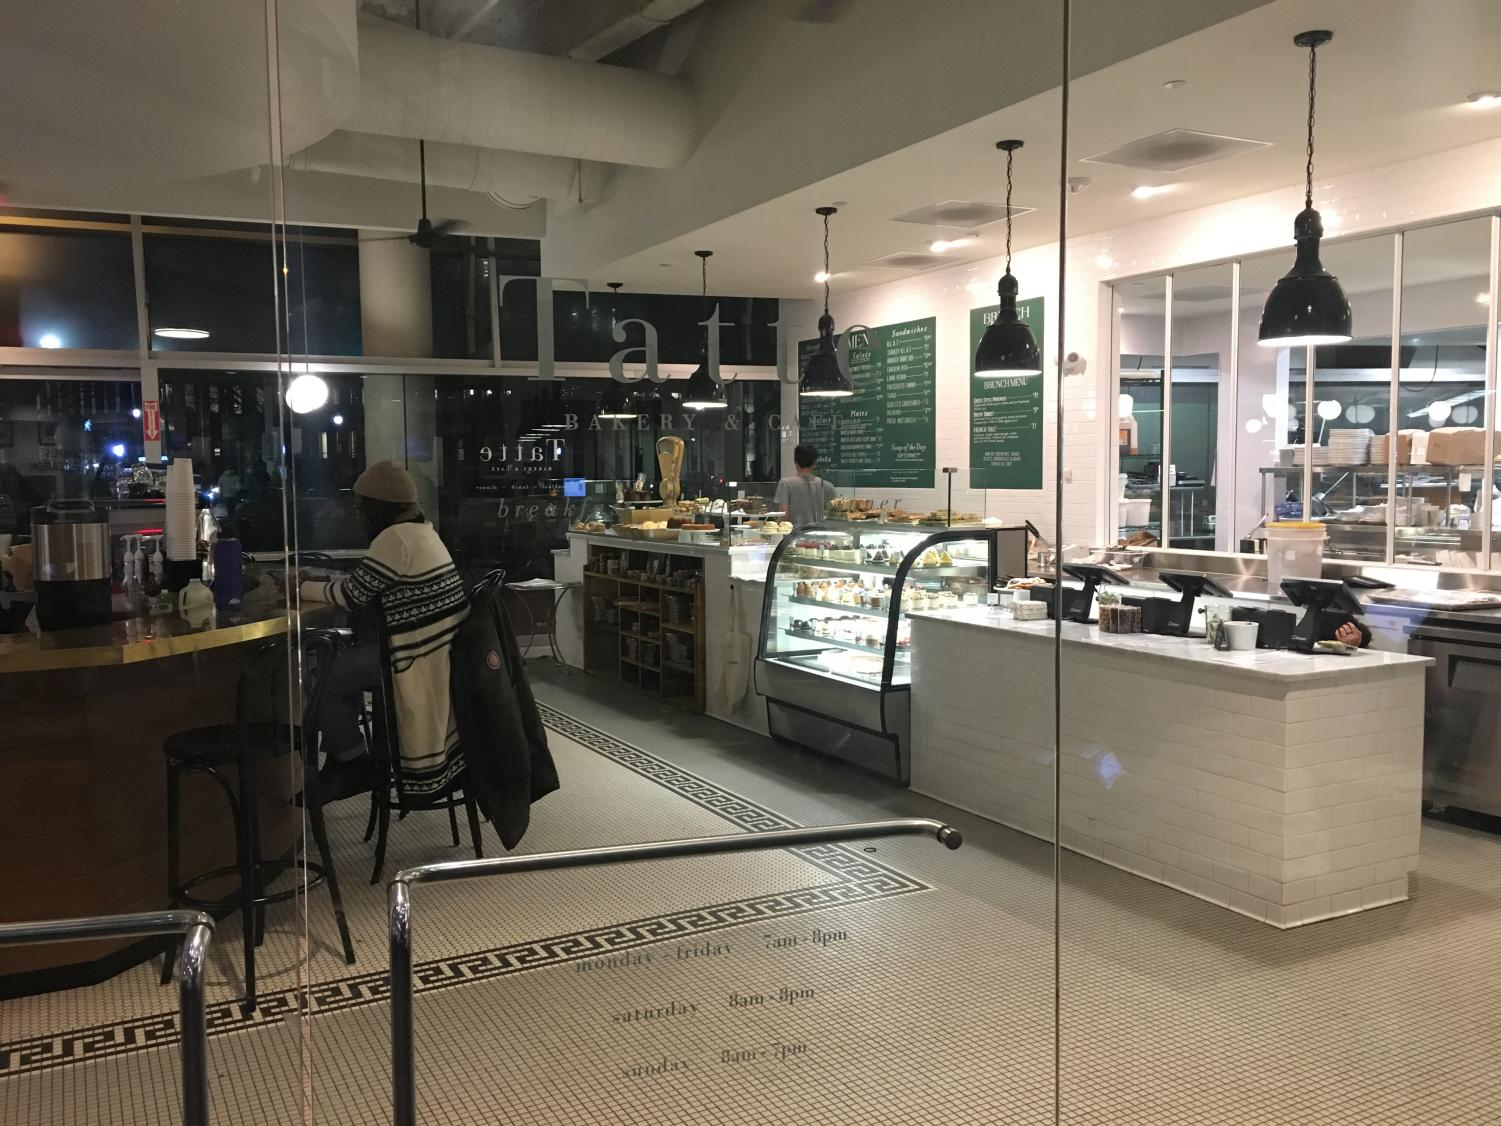 At the start of the fall semester, a Tatte opened on Northeastern's campus in Marino Center. Some students refrain from going to the cafe because of their premium prices.